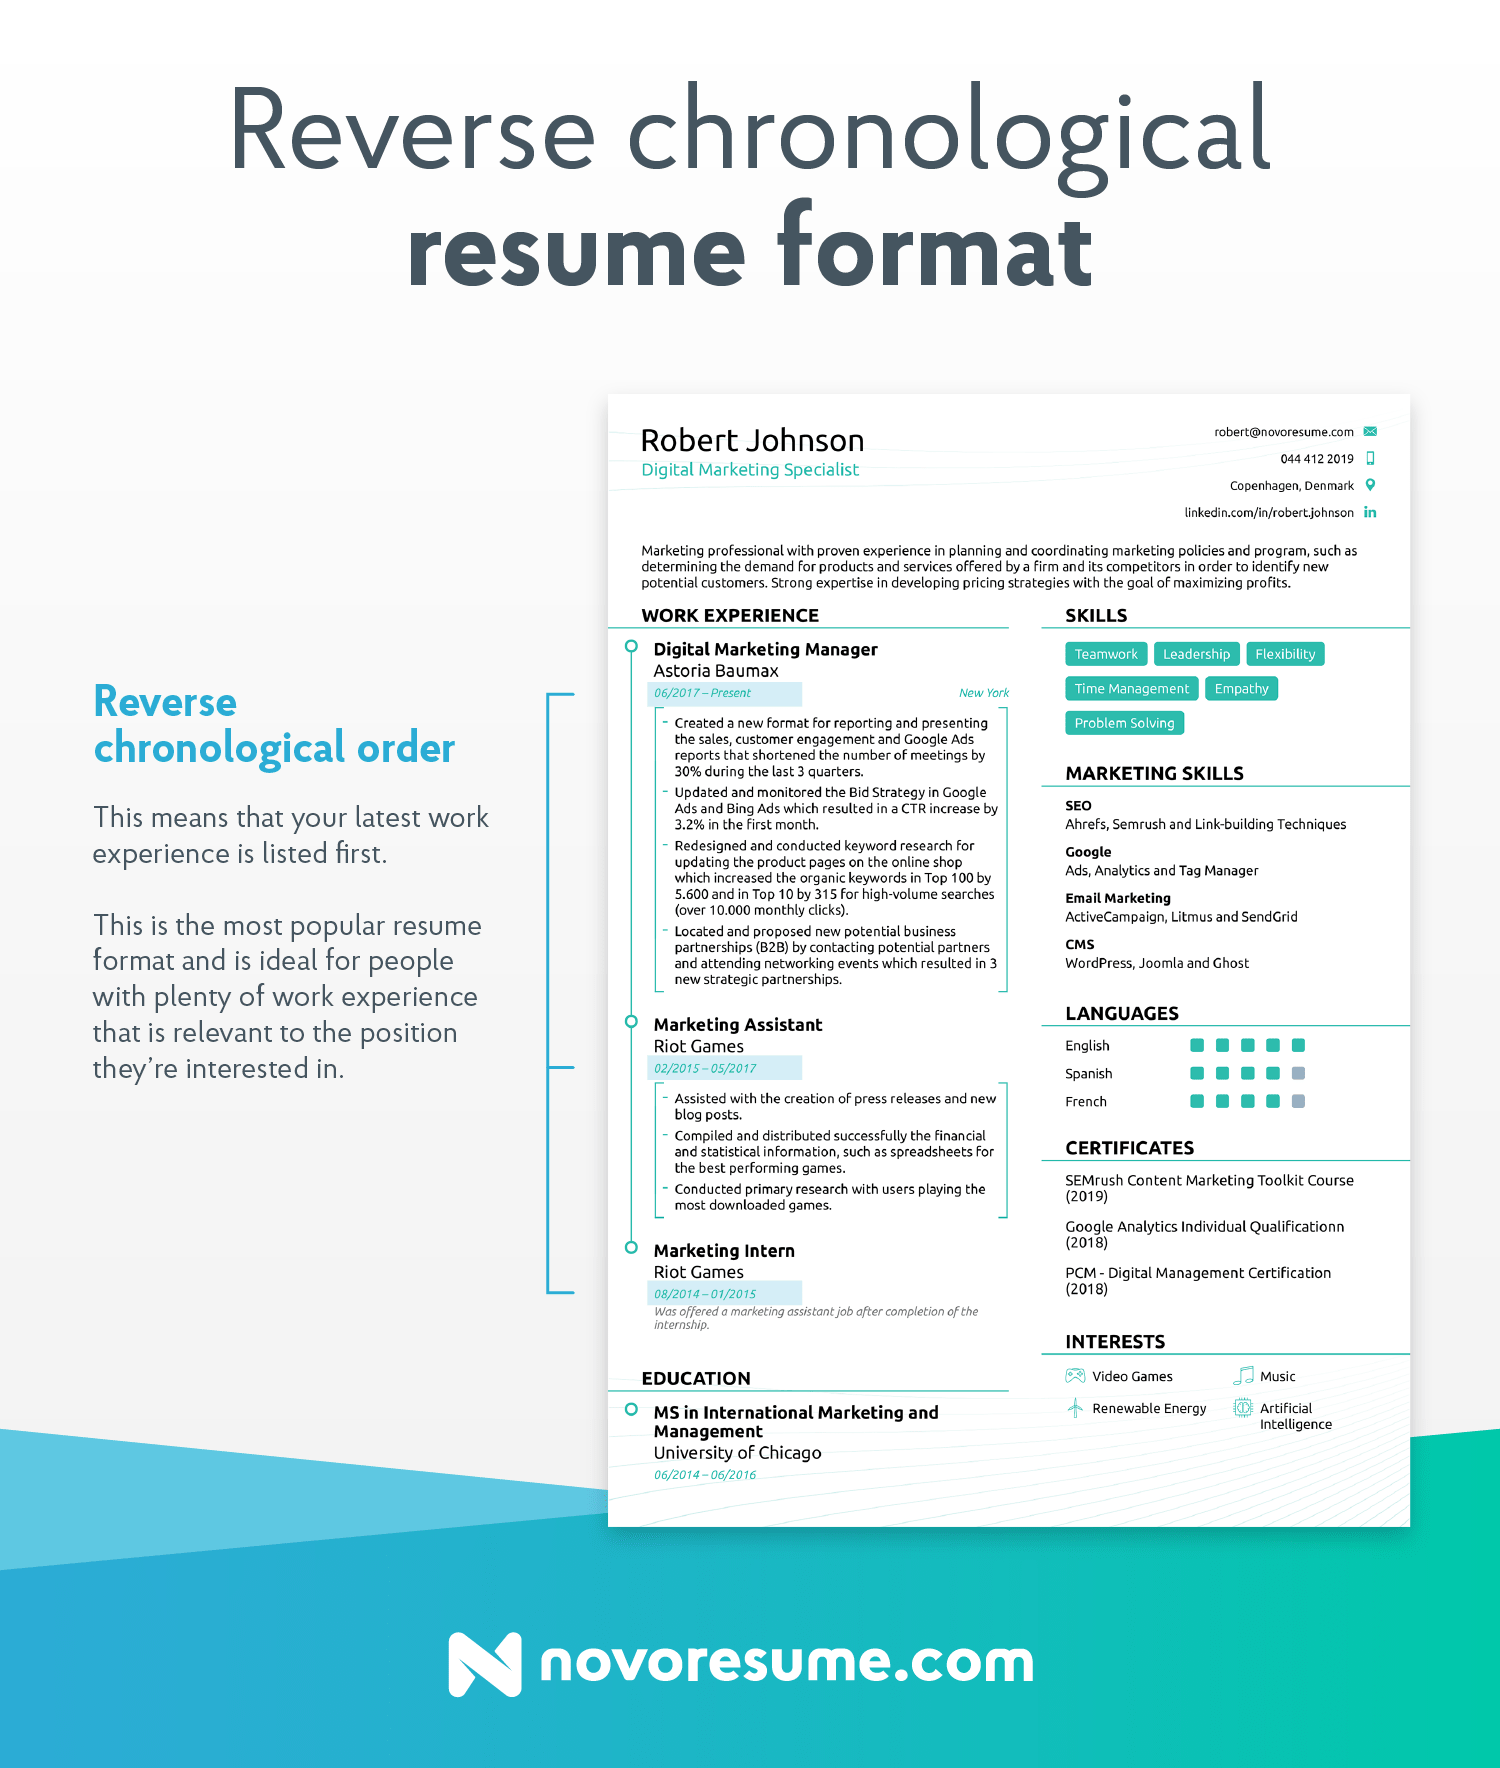 research assistant reverse chronological resume